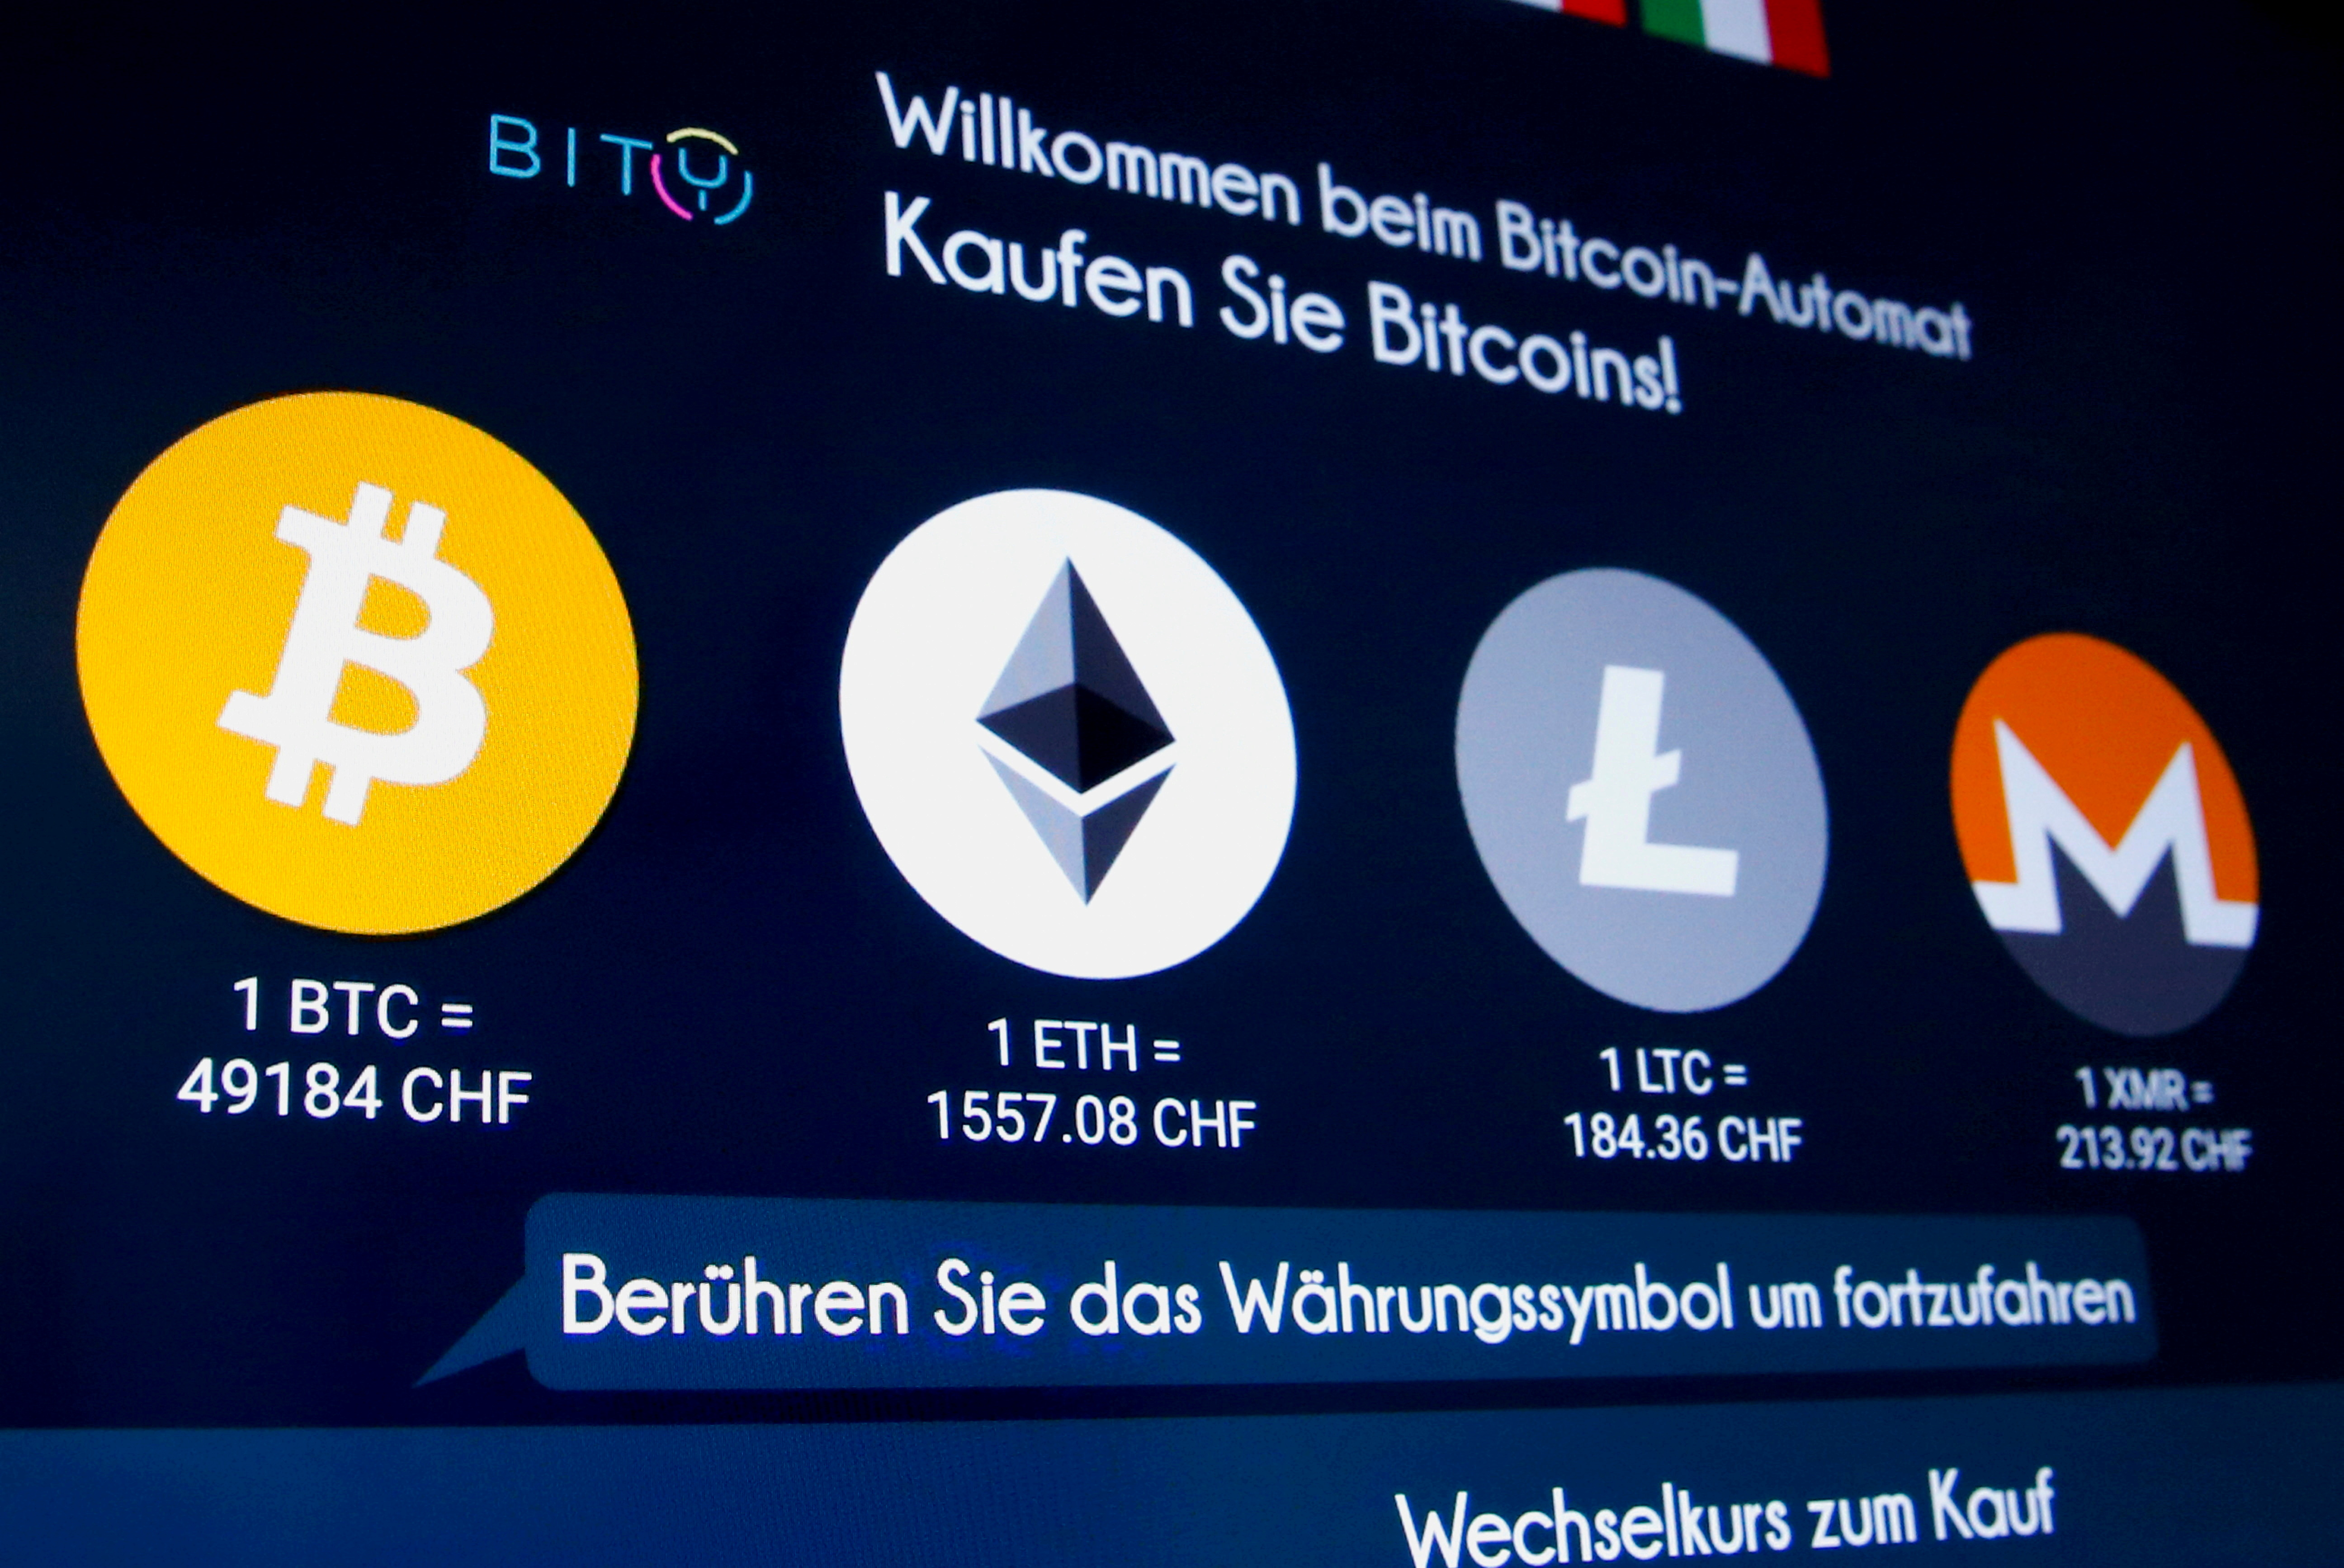 The exchange rates and logos of Bitcoin (BTH), Ether (ETH), Litecoin (LTC) and Monero (XMR) are seen on the display of a cryptocurrency ATM of blockchain payment service provider Bity at the House of Satochi bitcoin and blockchain shop in Zurich, Switzerland March 4, 2021. REUTERS/Arnd Wiegmann/File Photo